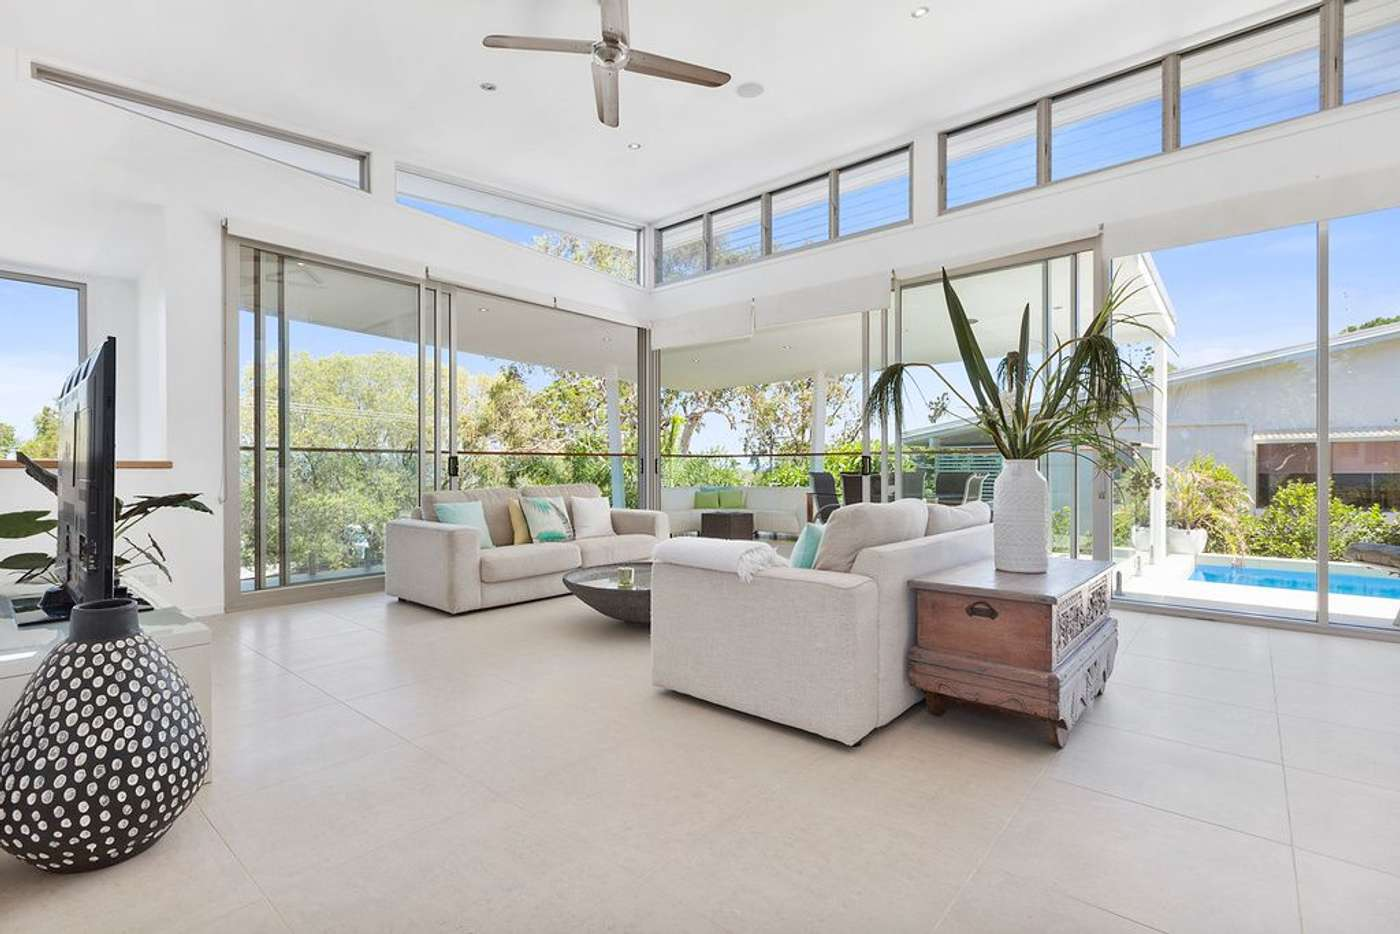 Main view of Homely house listing, 19 Nairana Rest, Noosa Heads QLD 4567